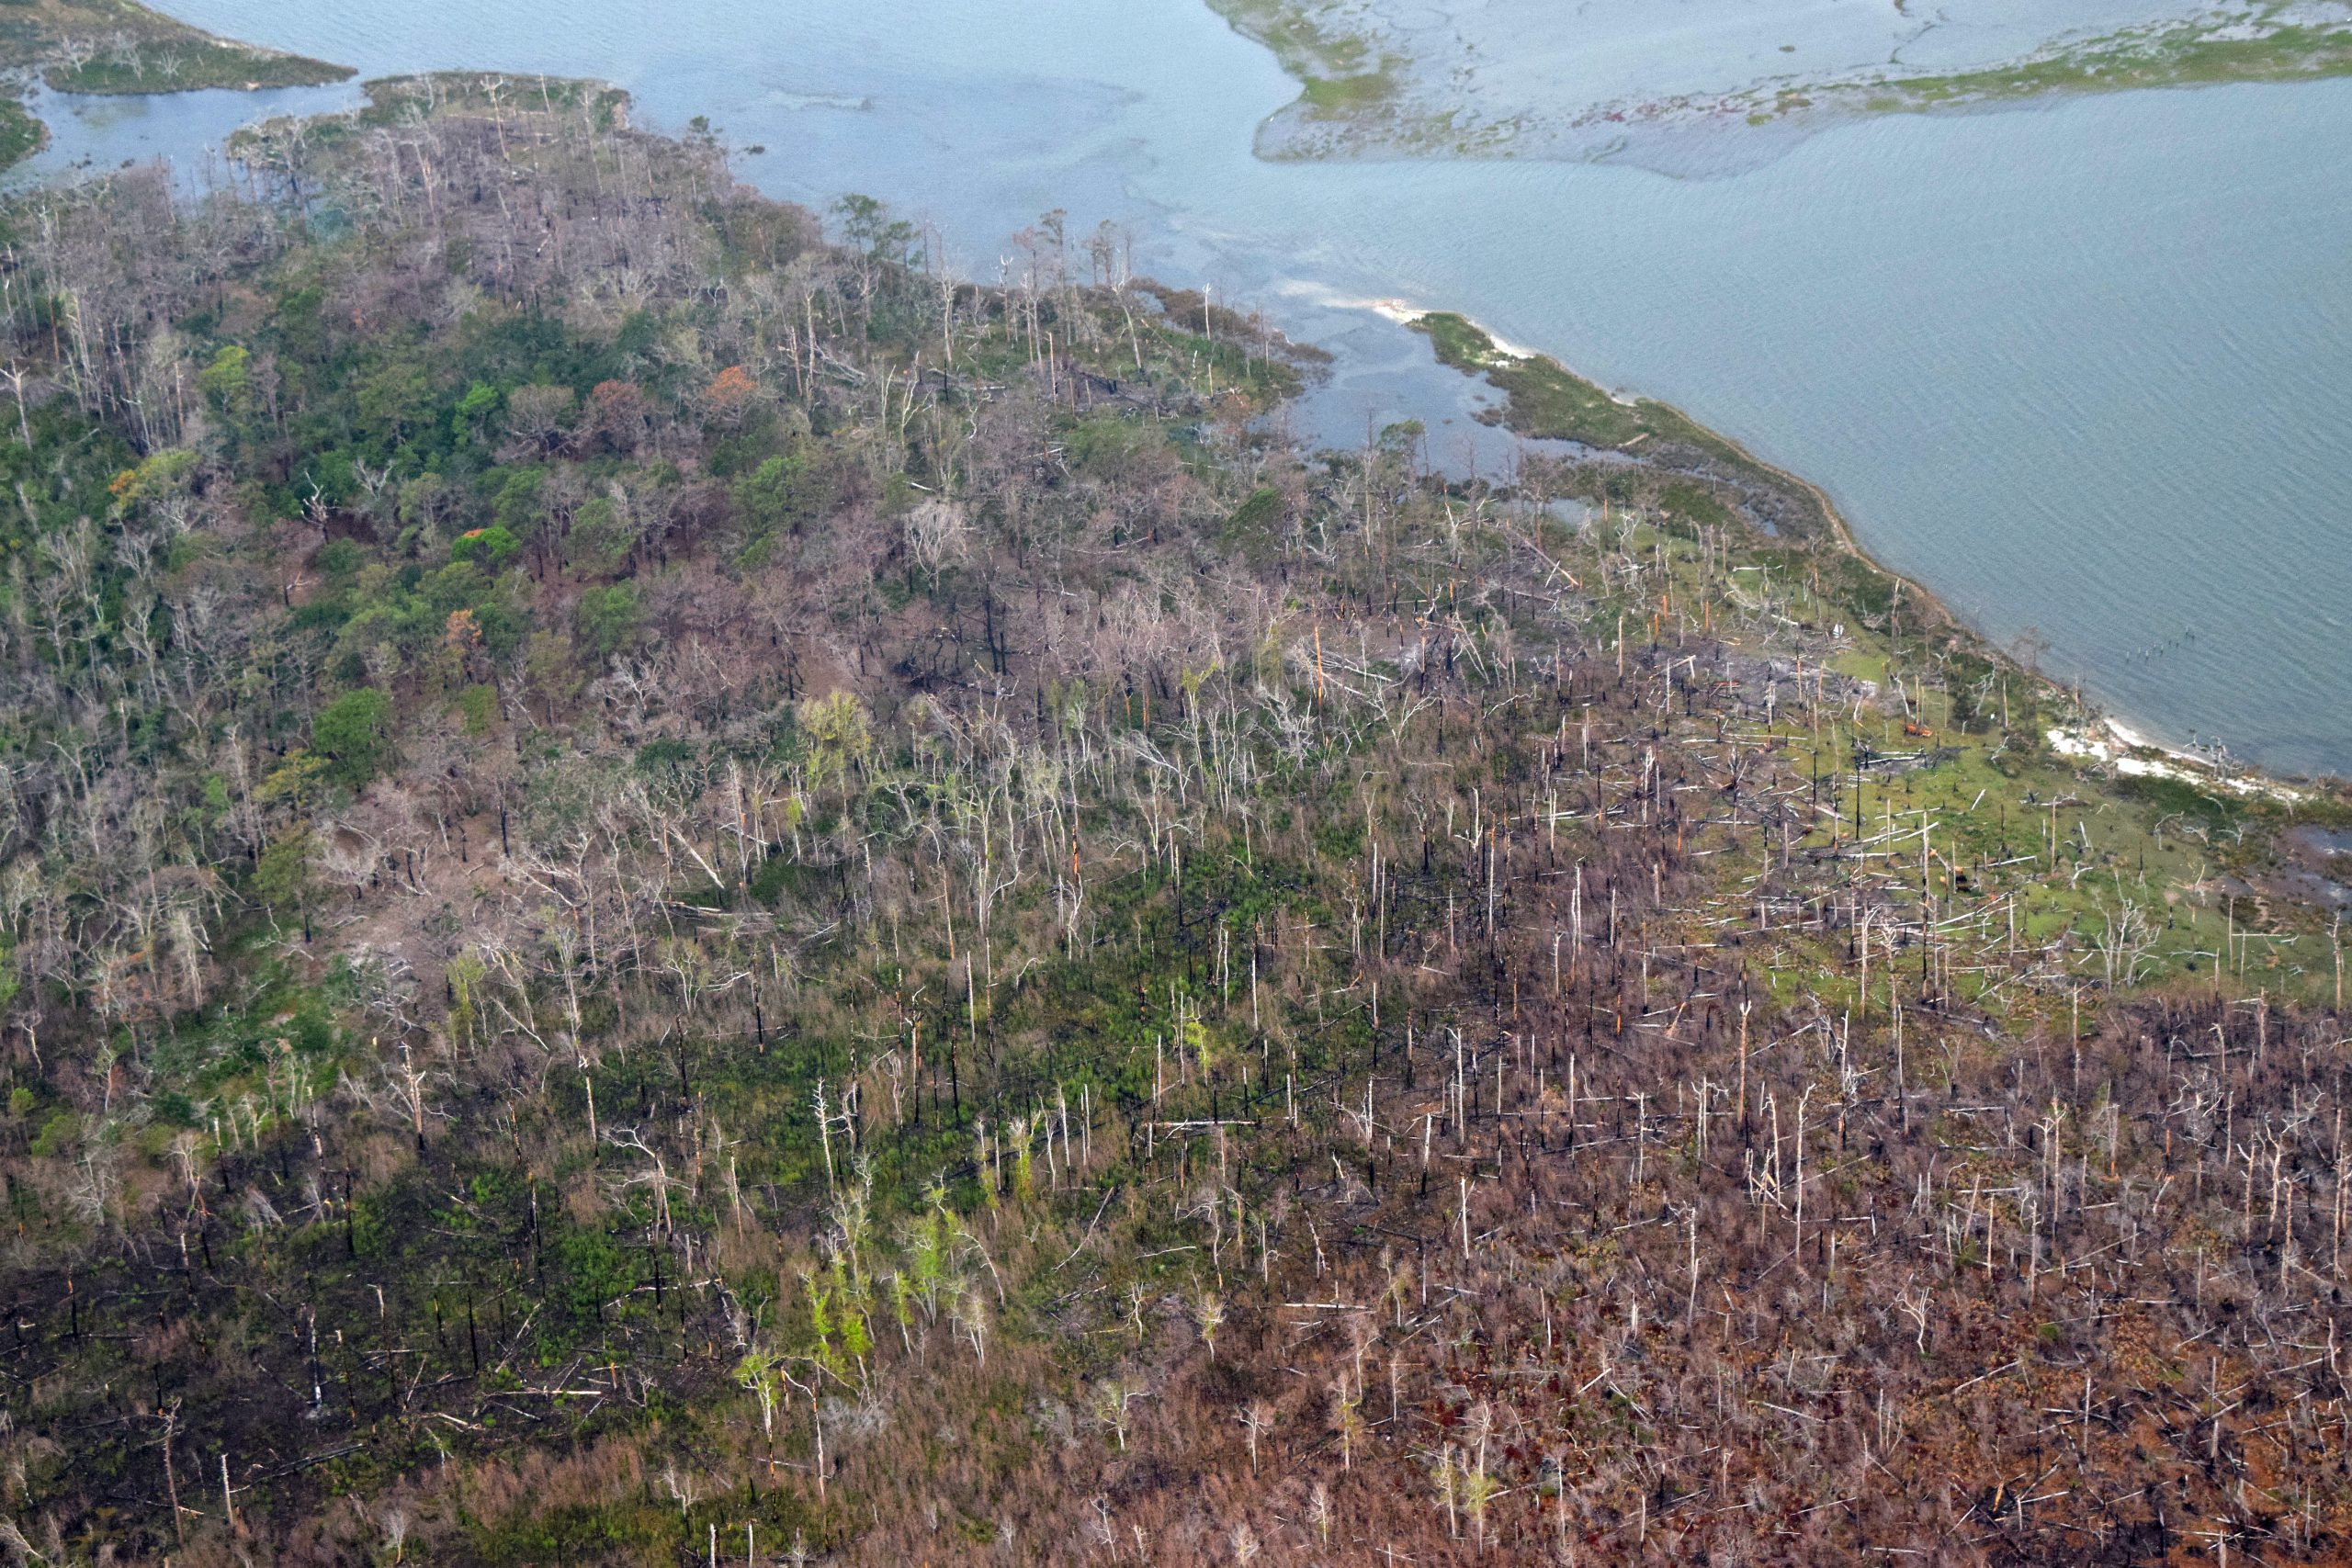 Ghost forests like this one on the North Carolina coast are the result of widespread tree death caused by increased exposure to saltwater. Photo: Mark Hibbs/SouthWings